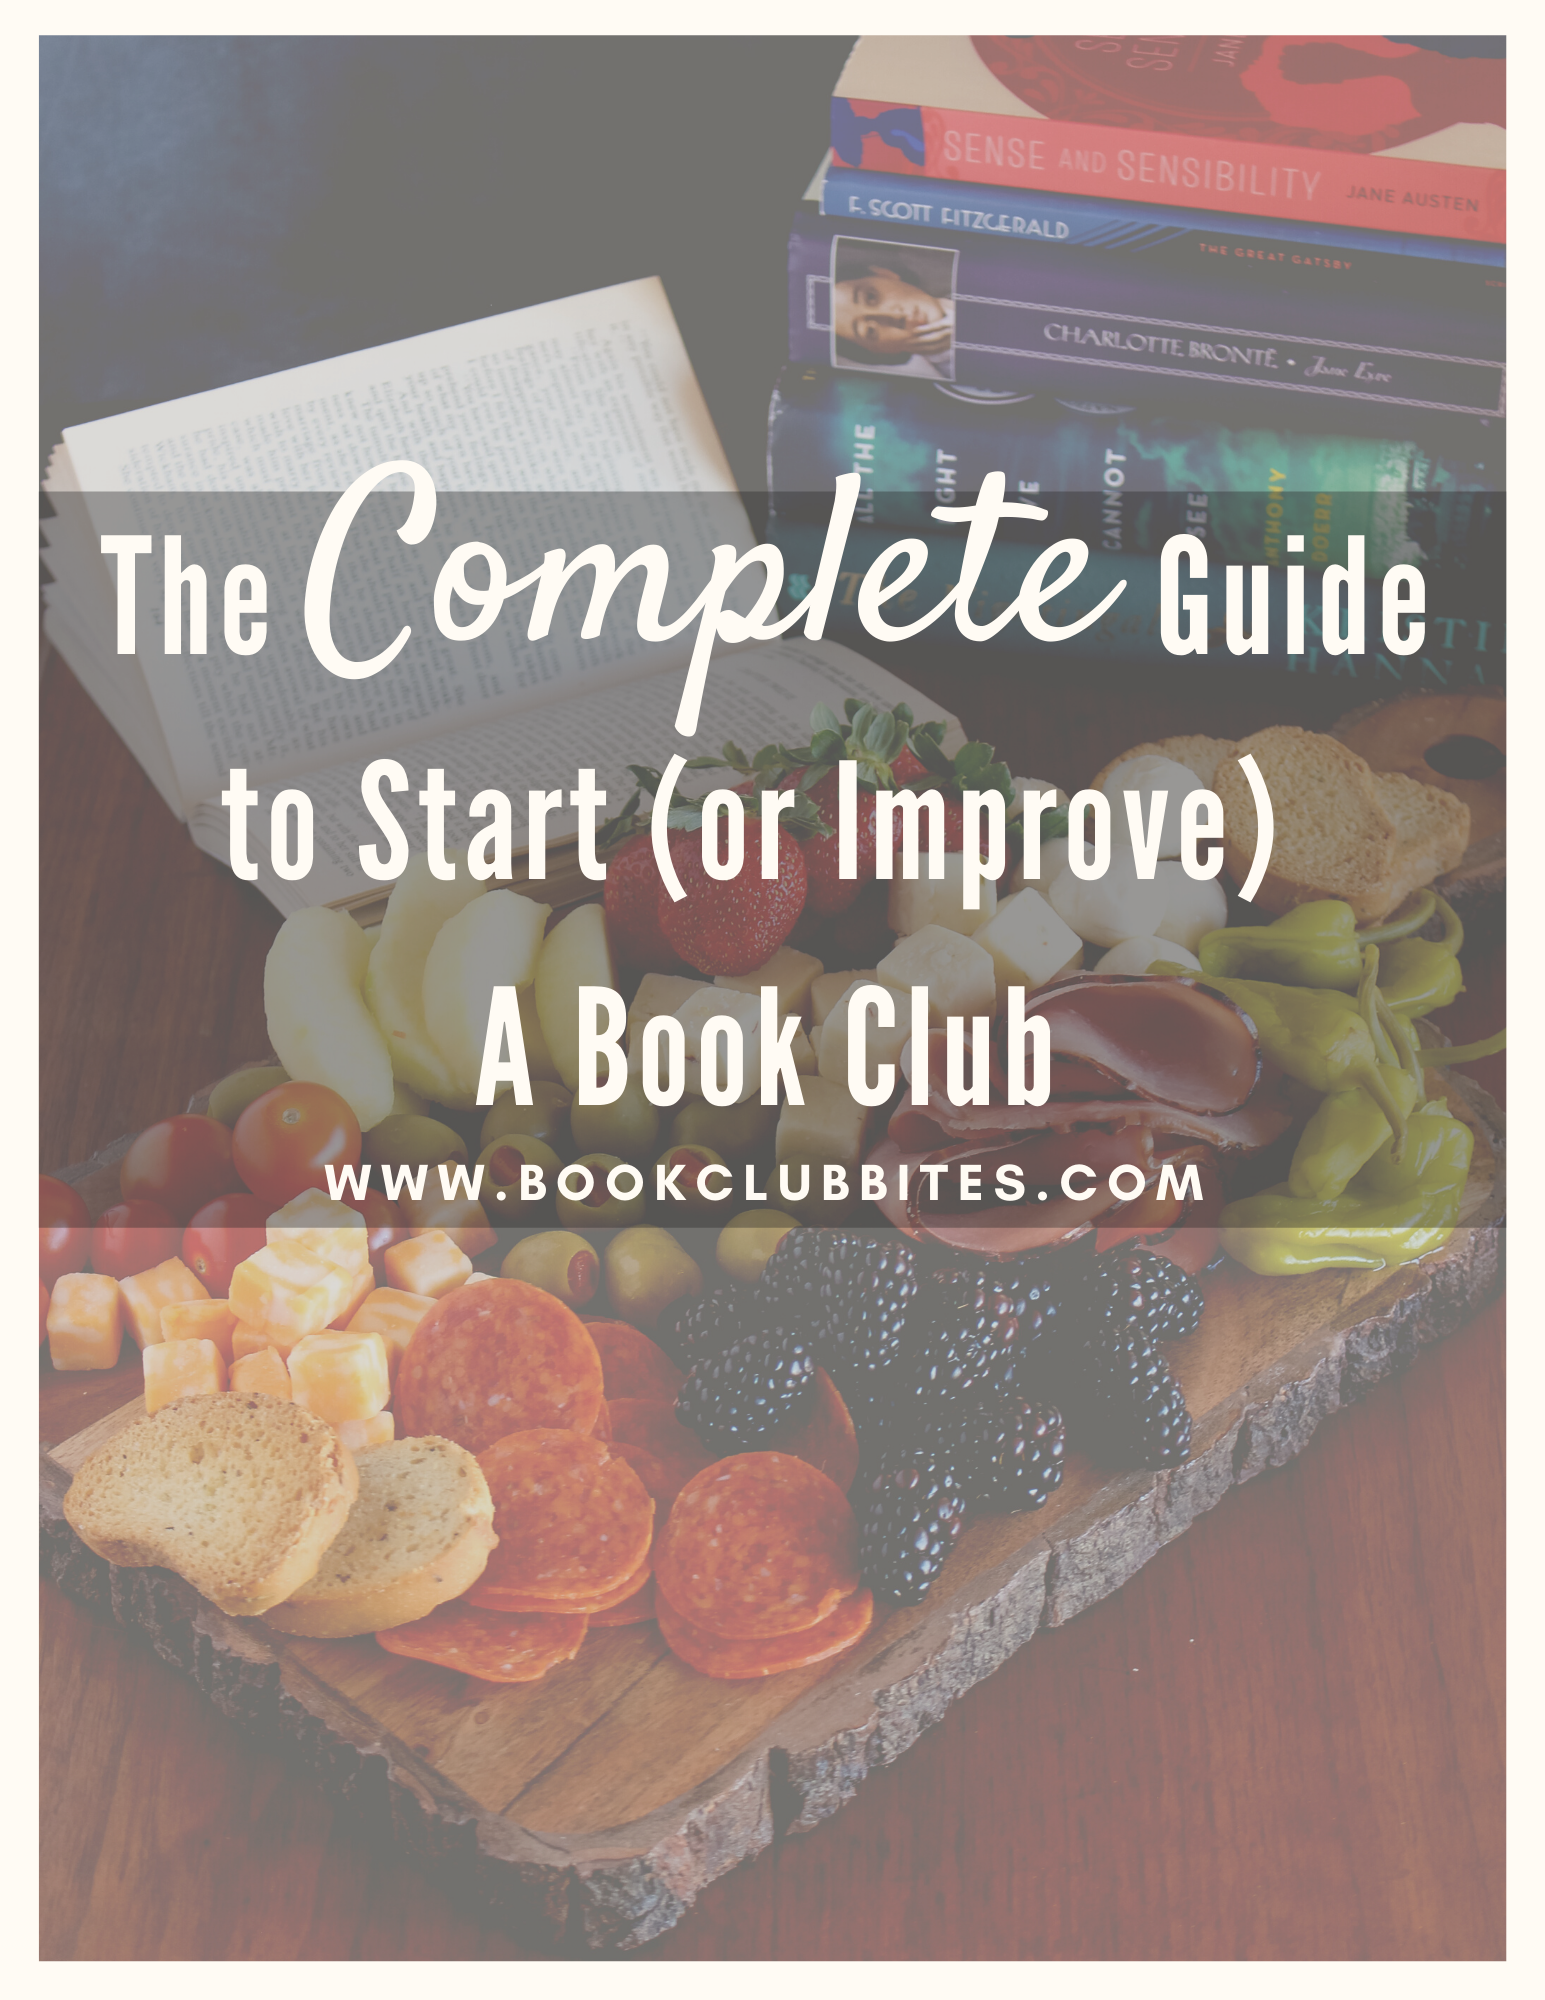 The Complete Guide to Start (or Improve) a Book Club